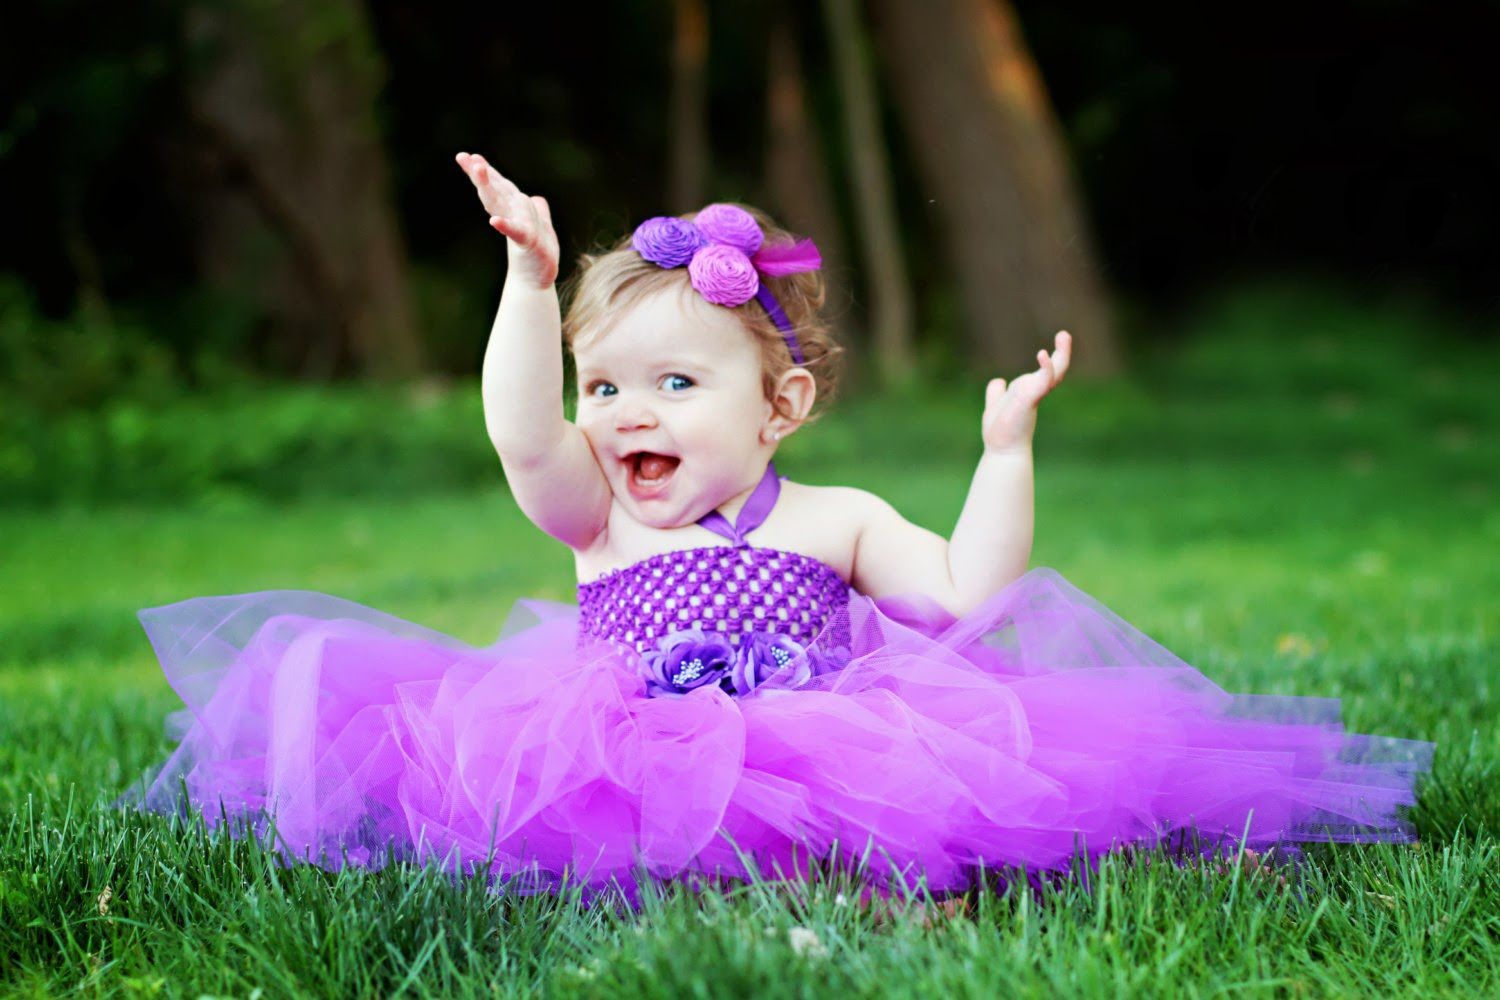 babygirl #babygirlclothes browse sales on trendy baby clothes online